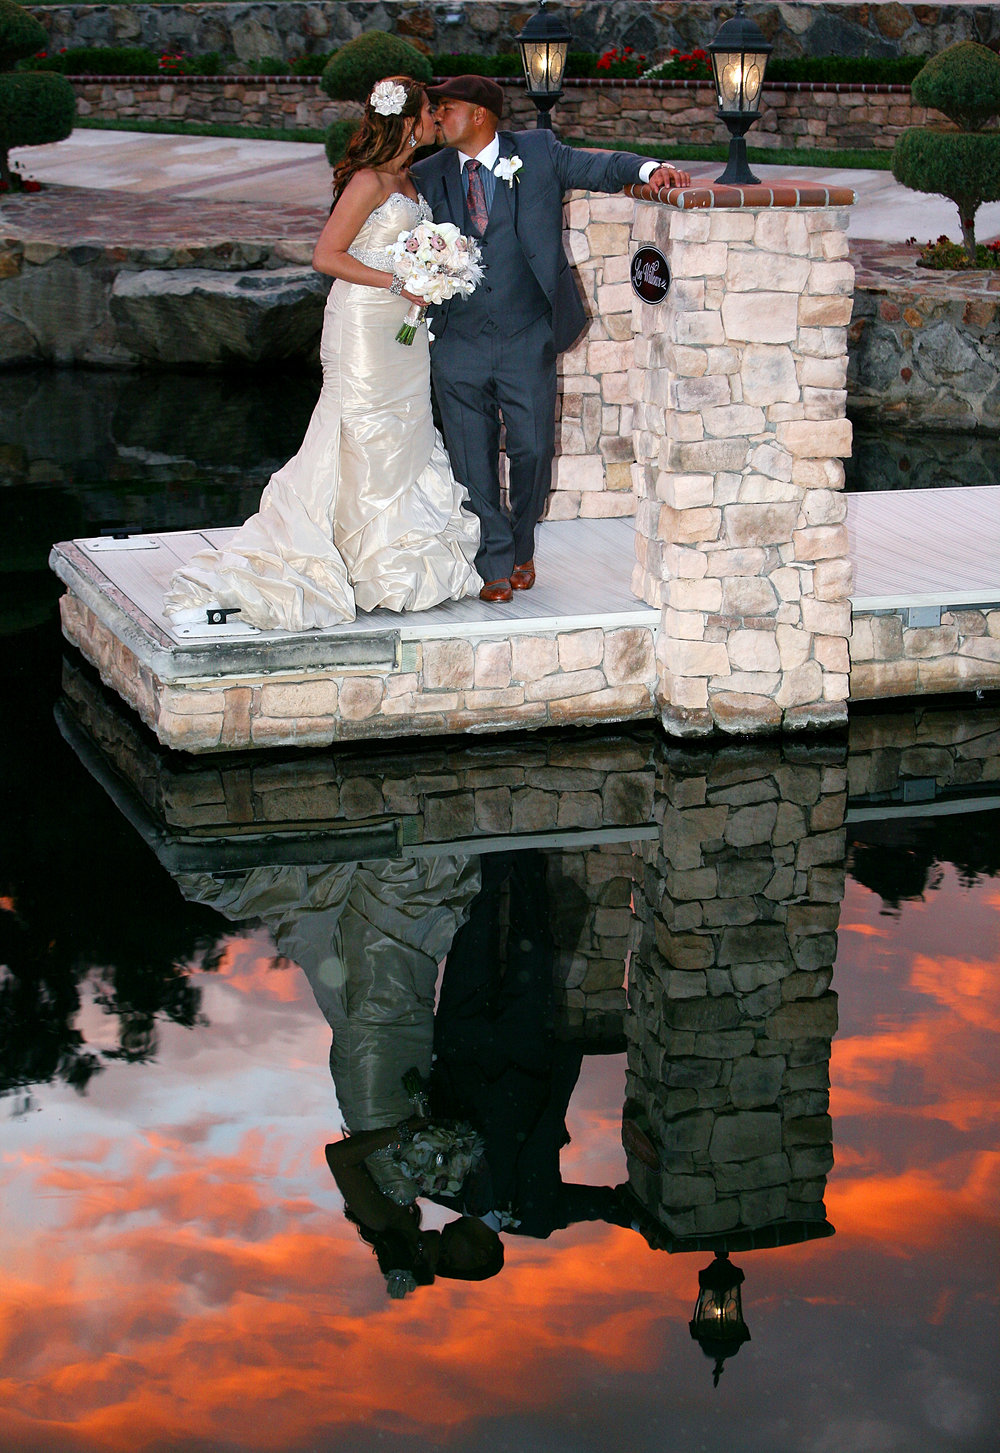 ShadowcatcherGalleryOne_SanDiegoWeddingPhotogrpaher_108.JPG